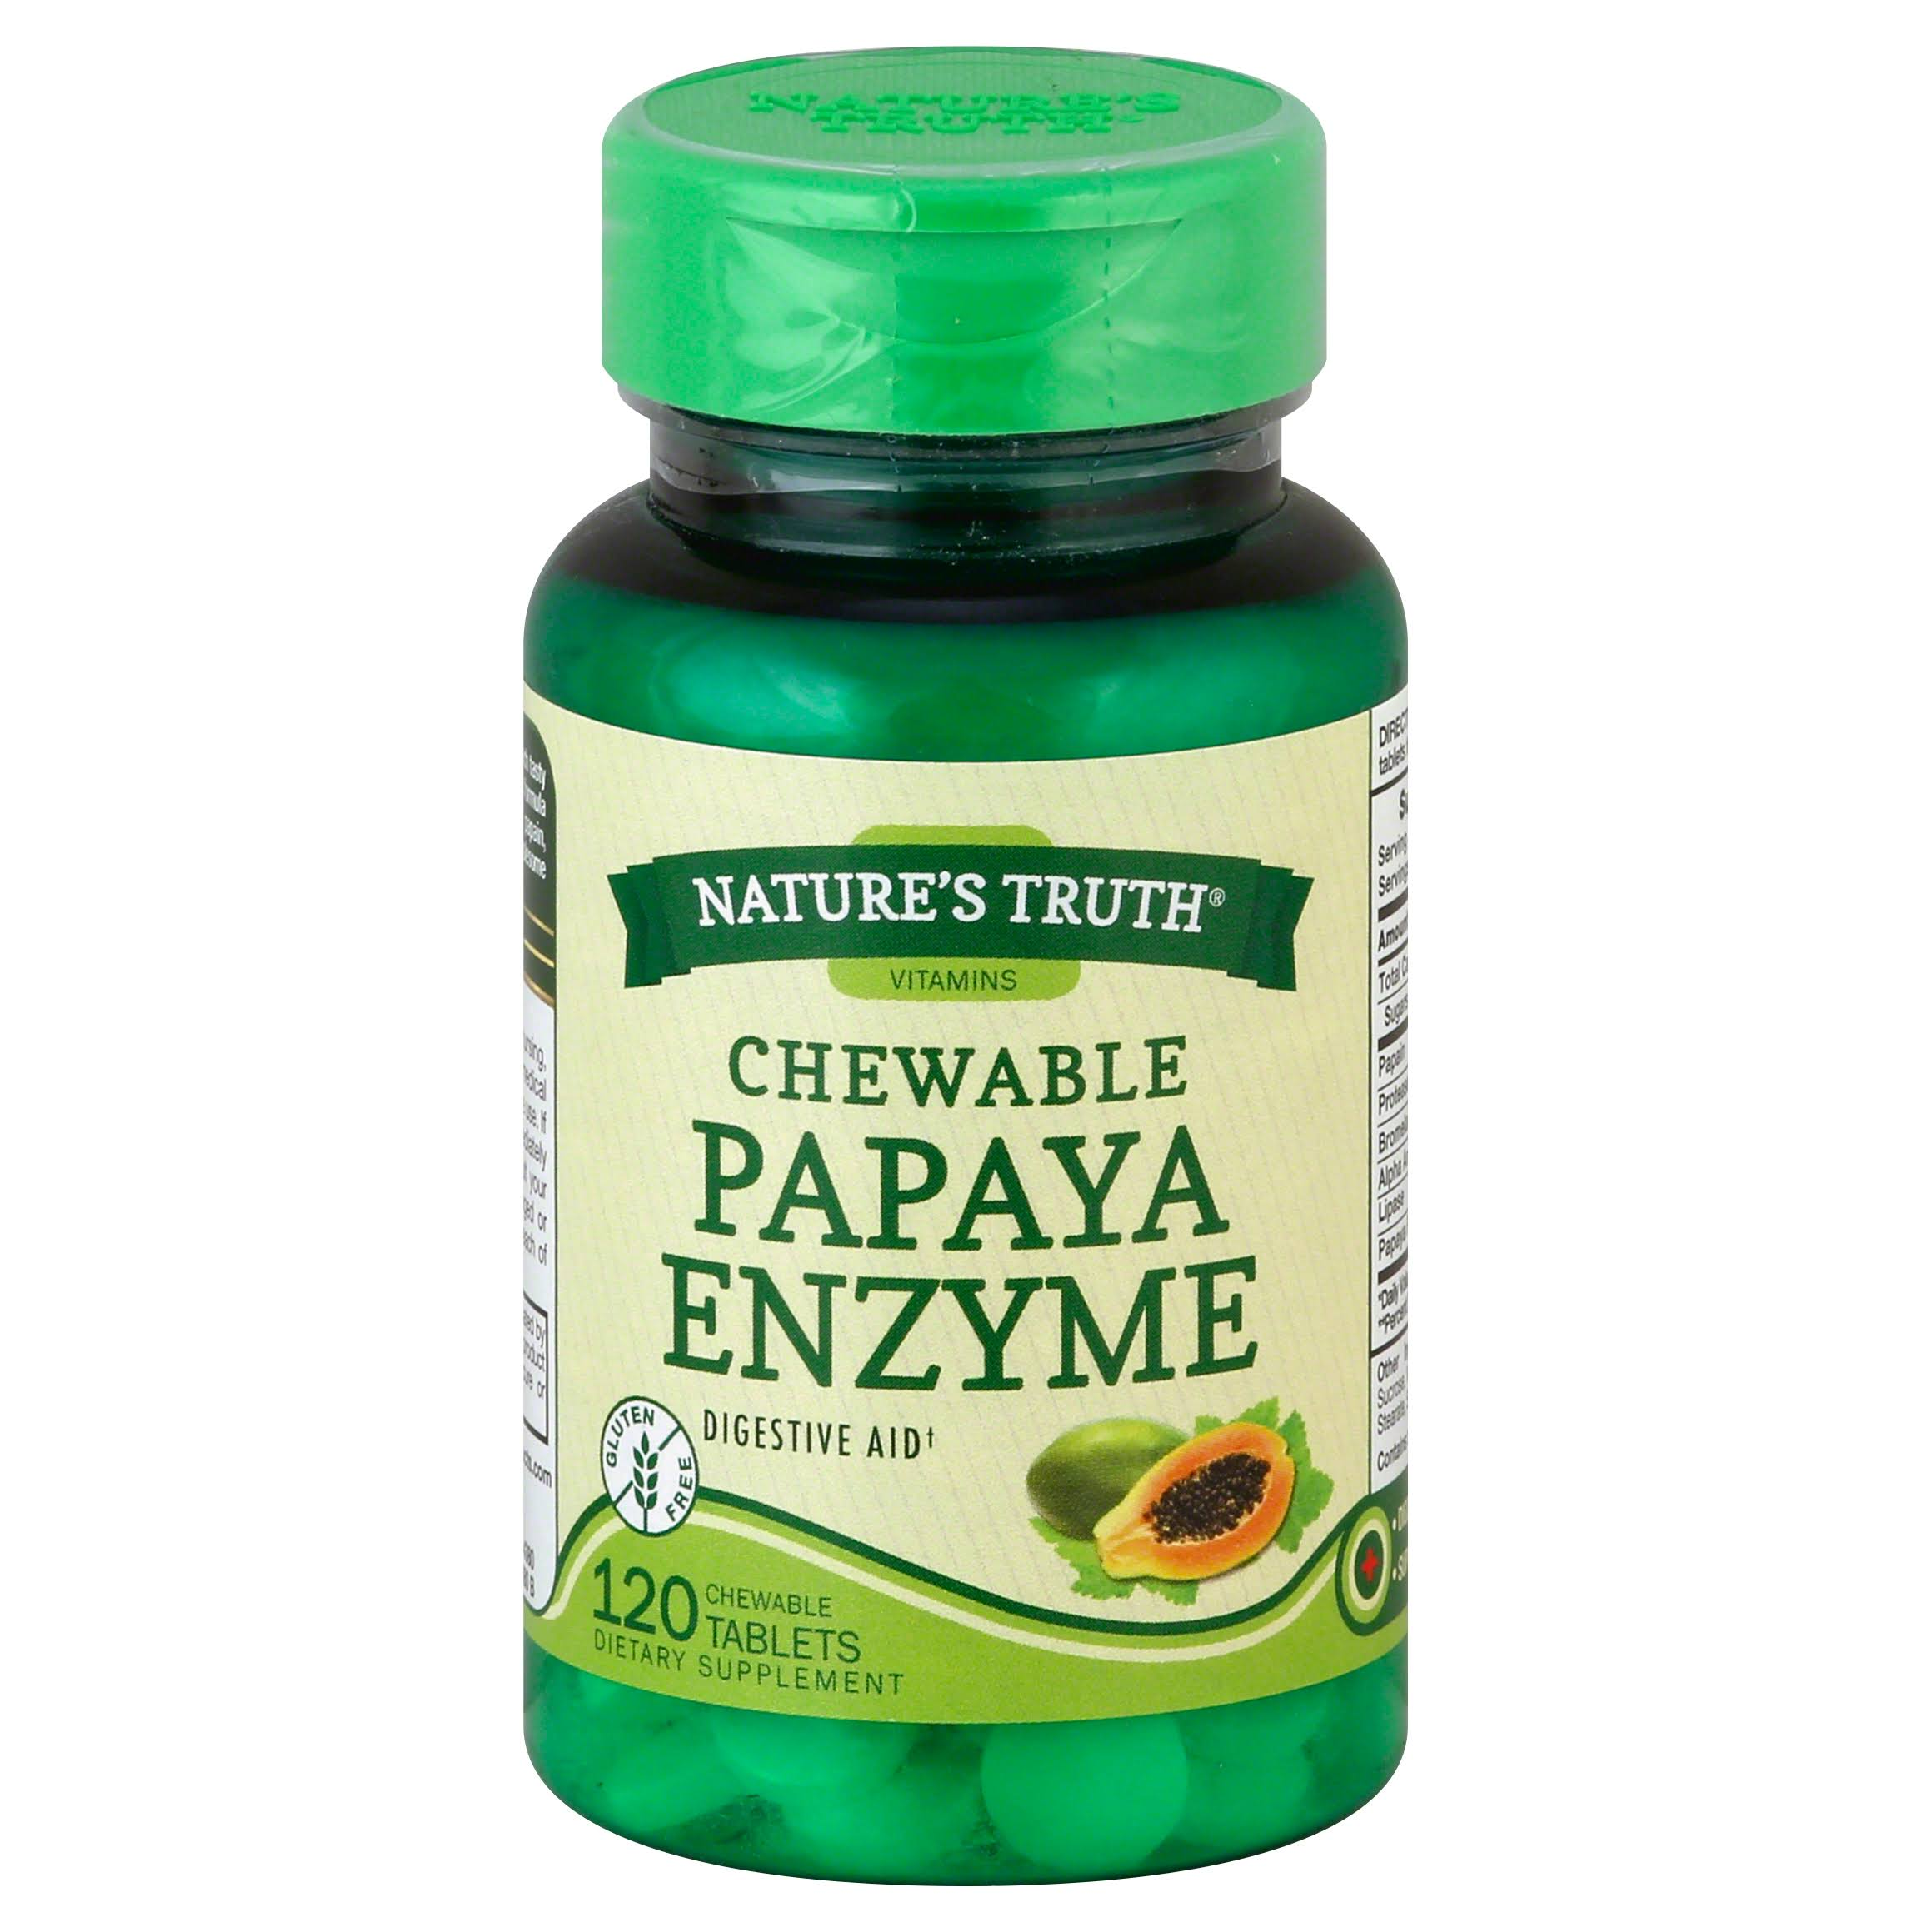 Nature's Truth Chewable Papaya Enzyme Tablets - x120